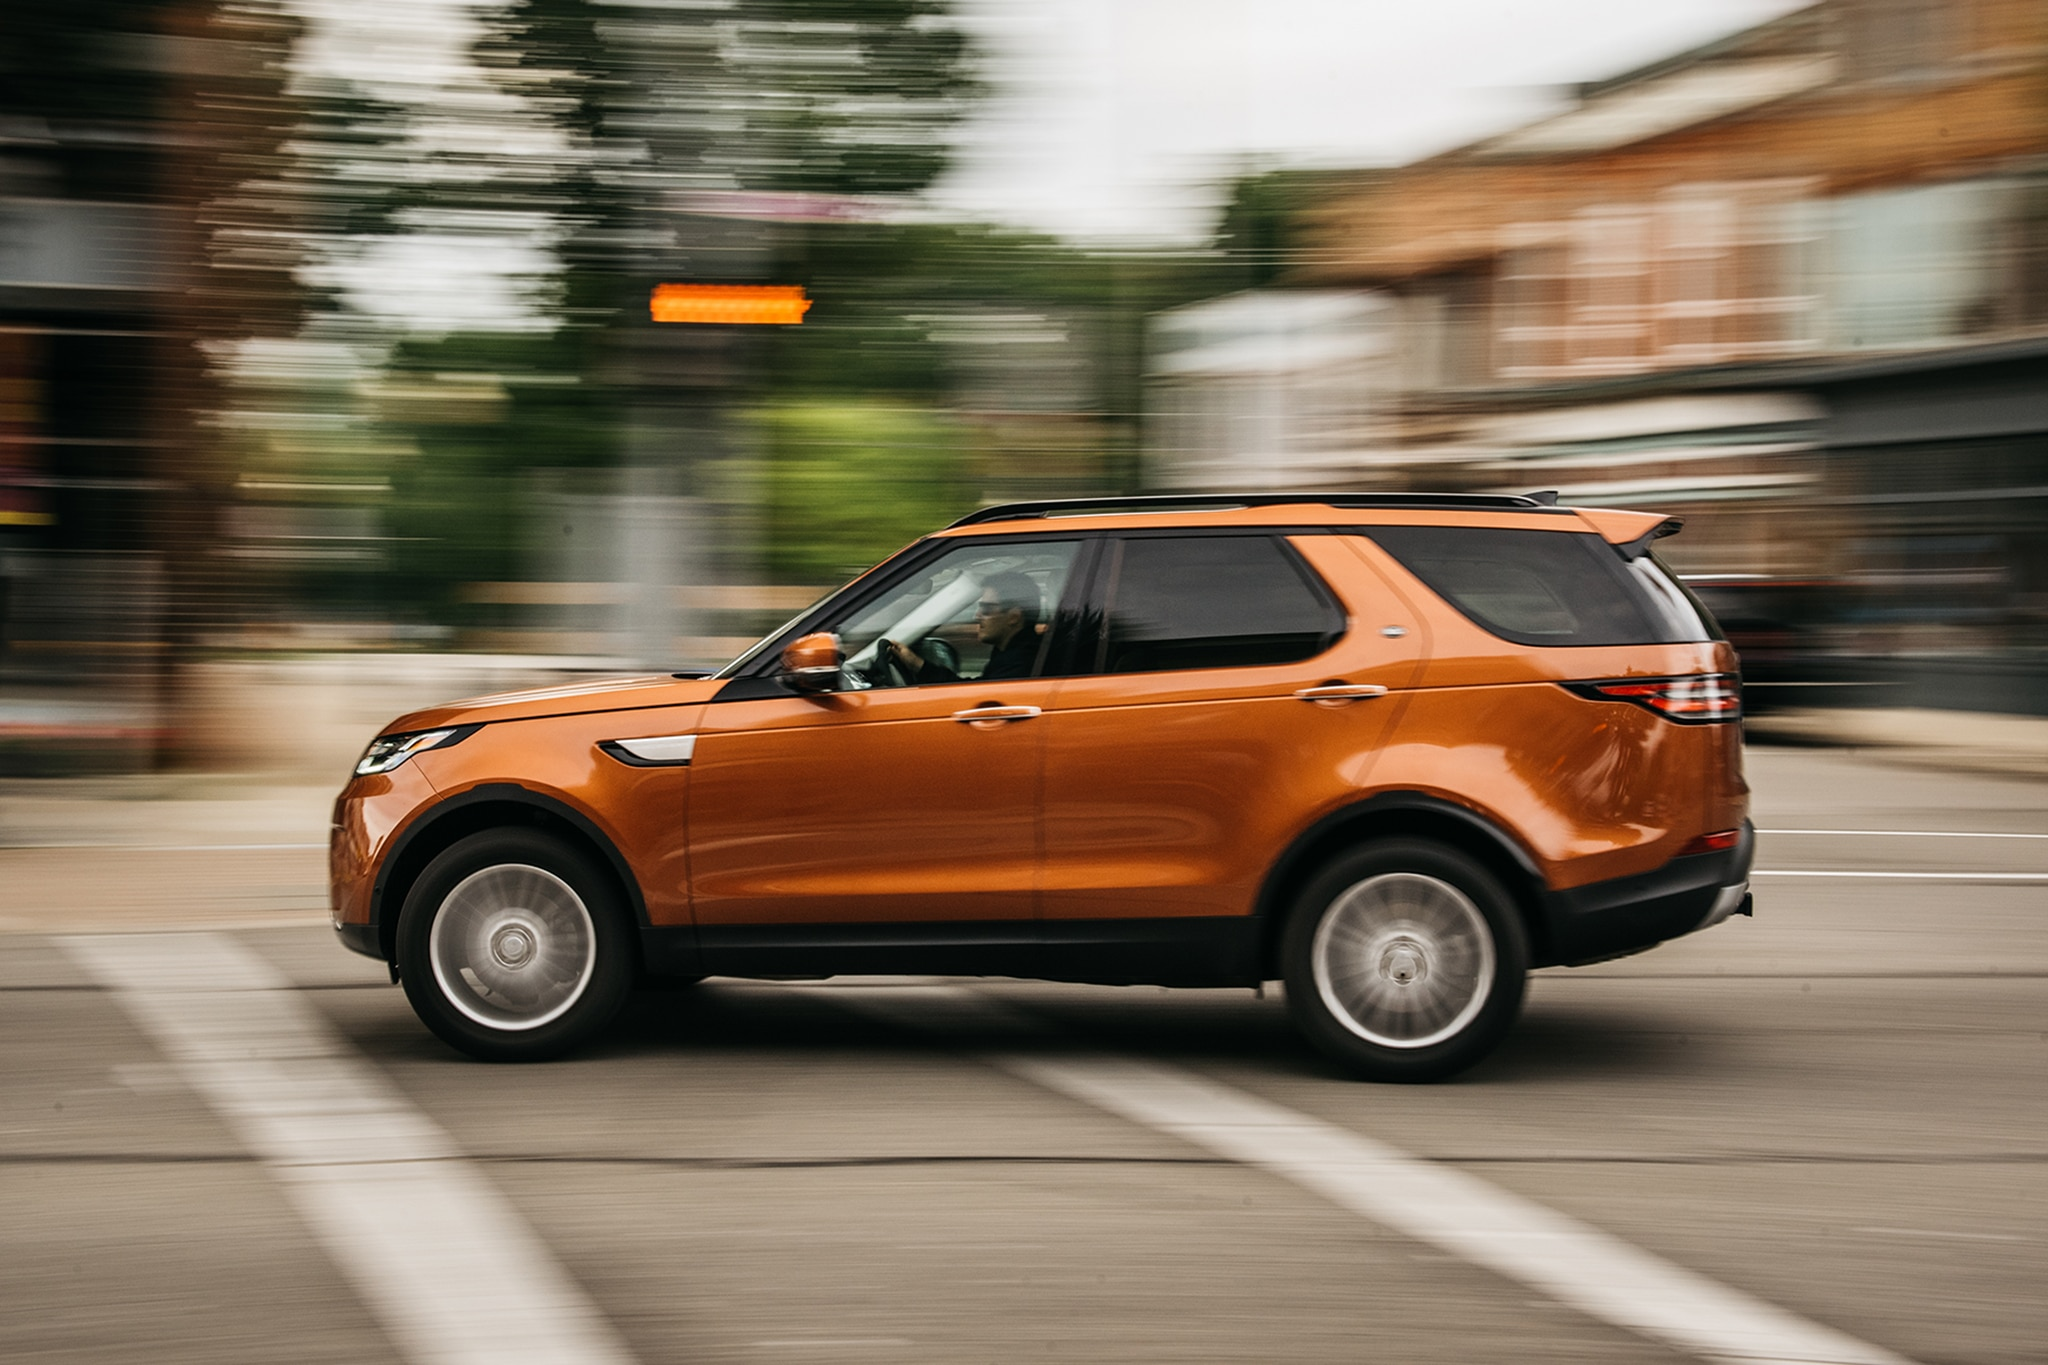 2017 Land Rover Discovery Td6 HSE Side Profile In Motion 01